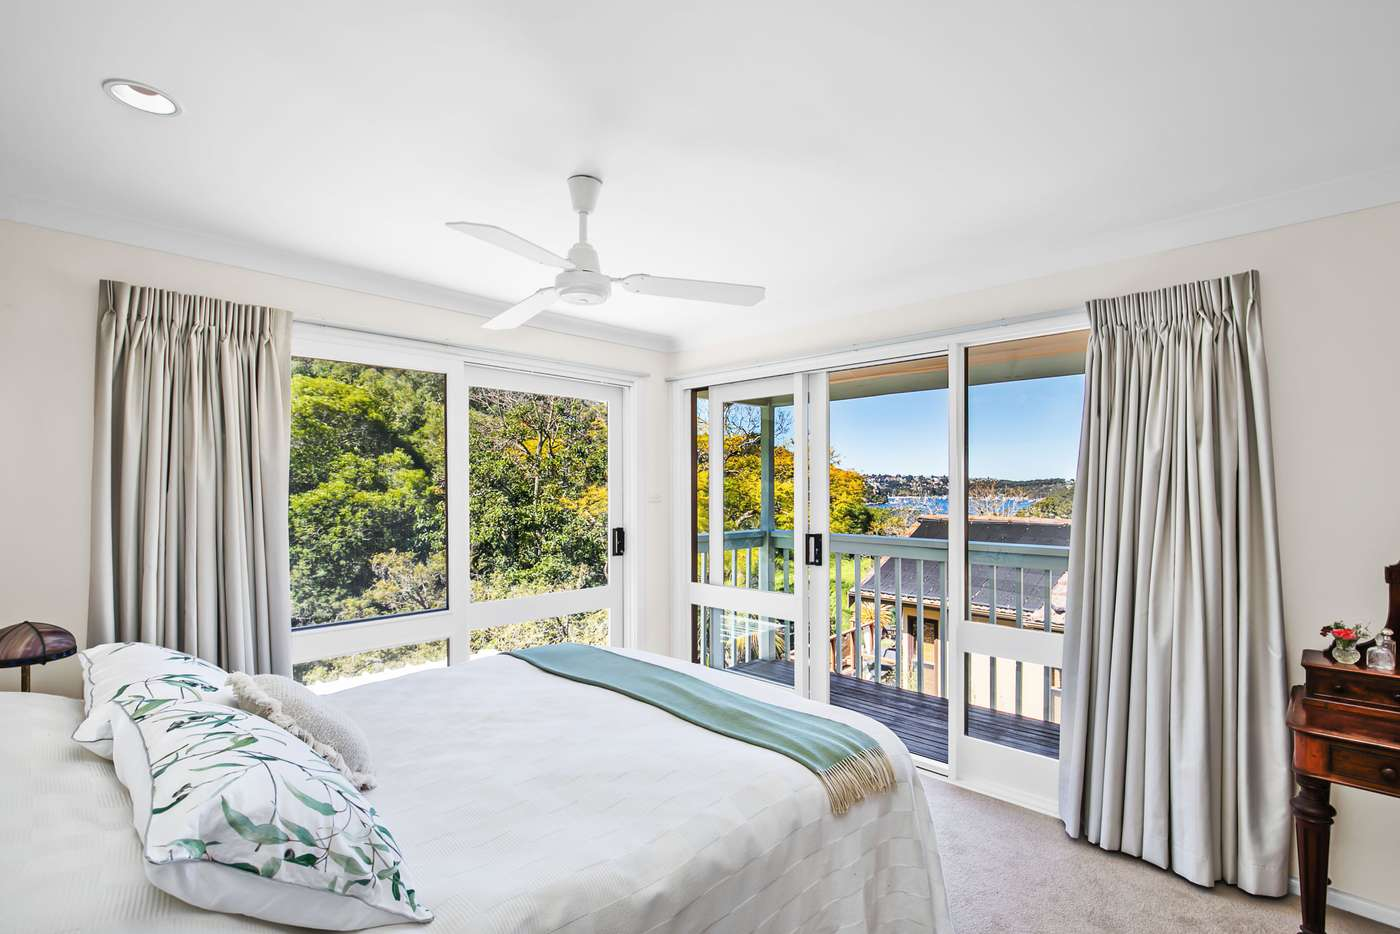 Sixth view of Homely house listing, 92 The Bulwark, Castlecrag NSW 2068